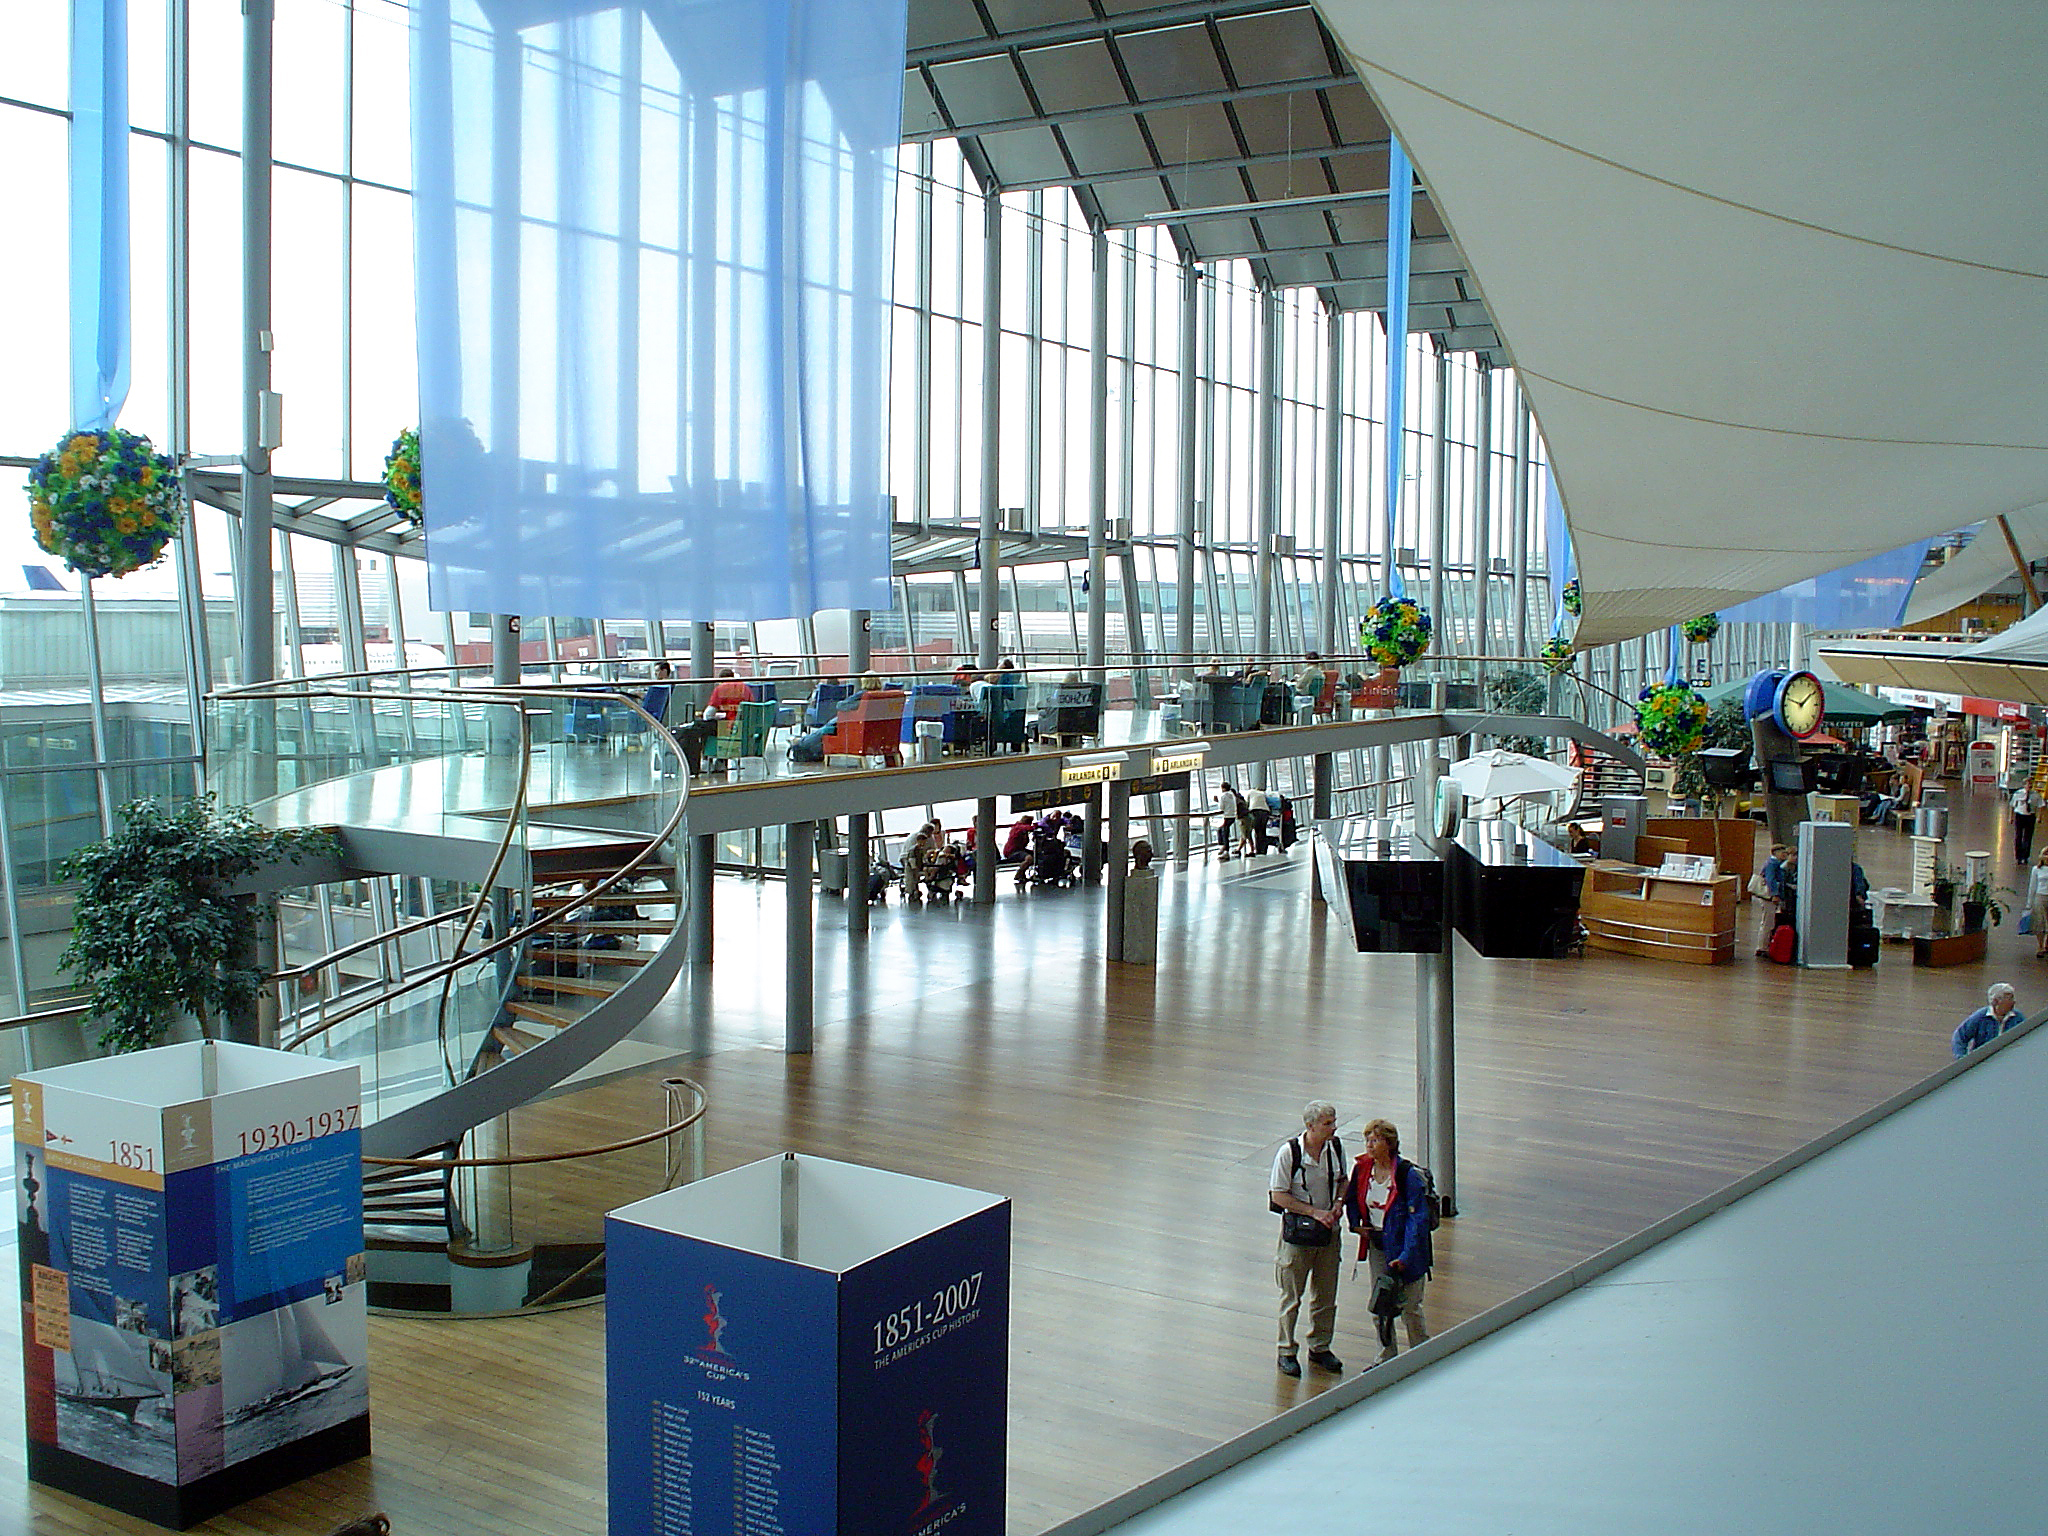 how to get from stockholm airport to city